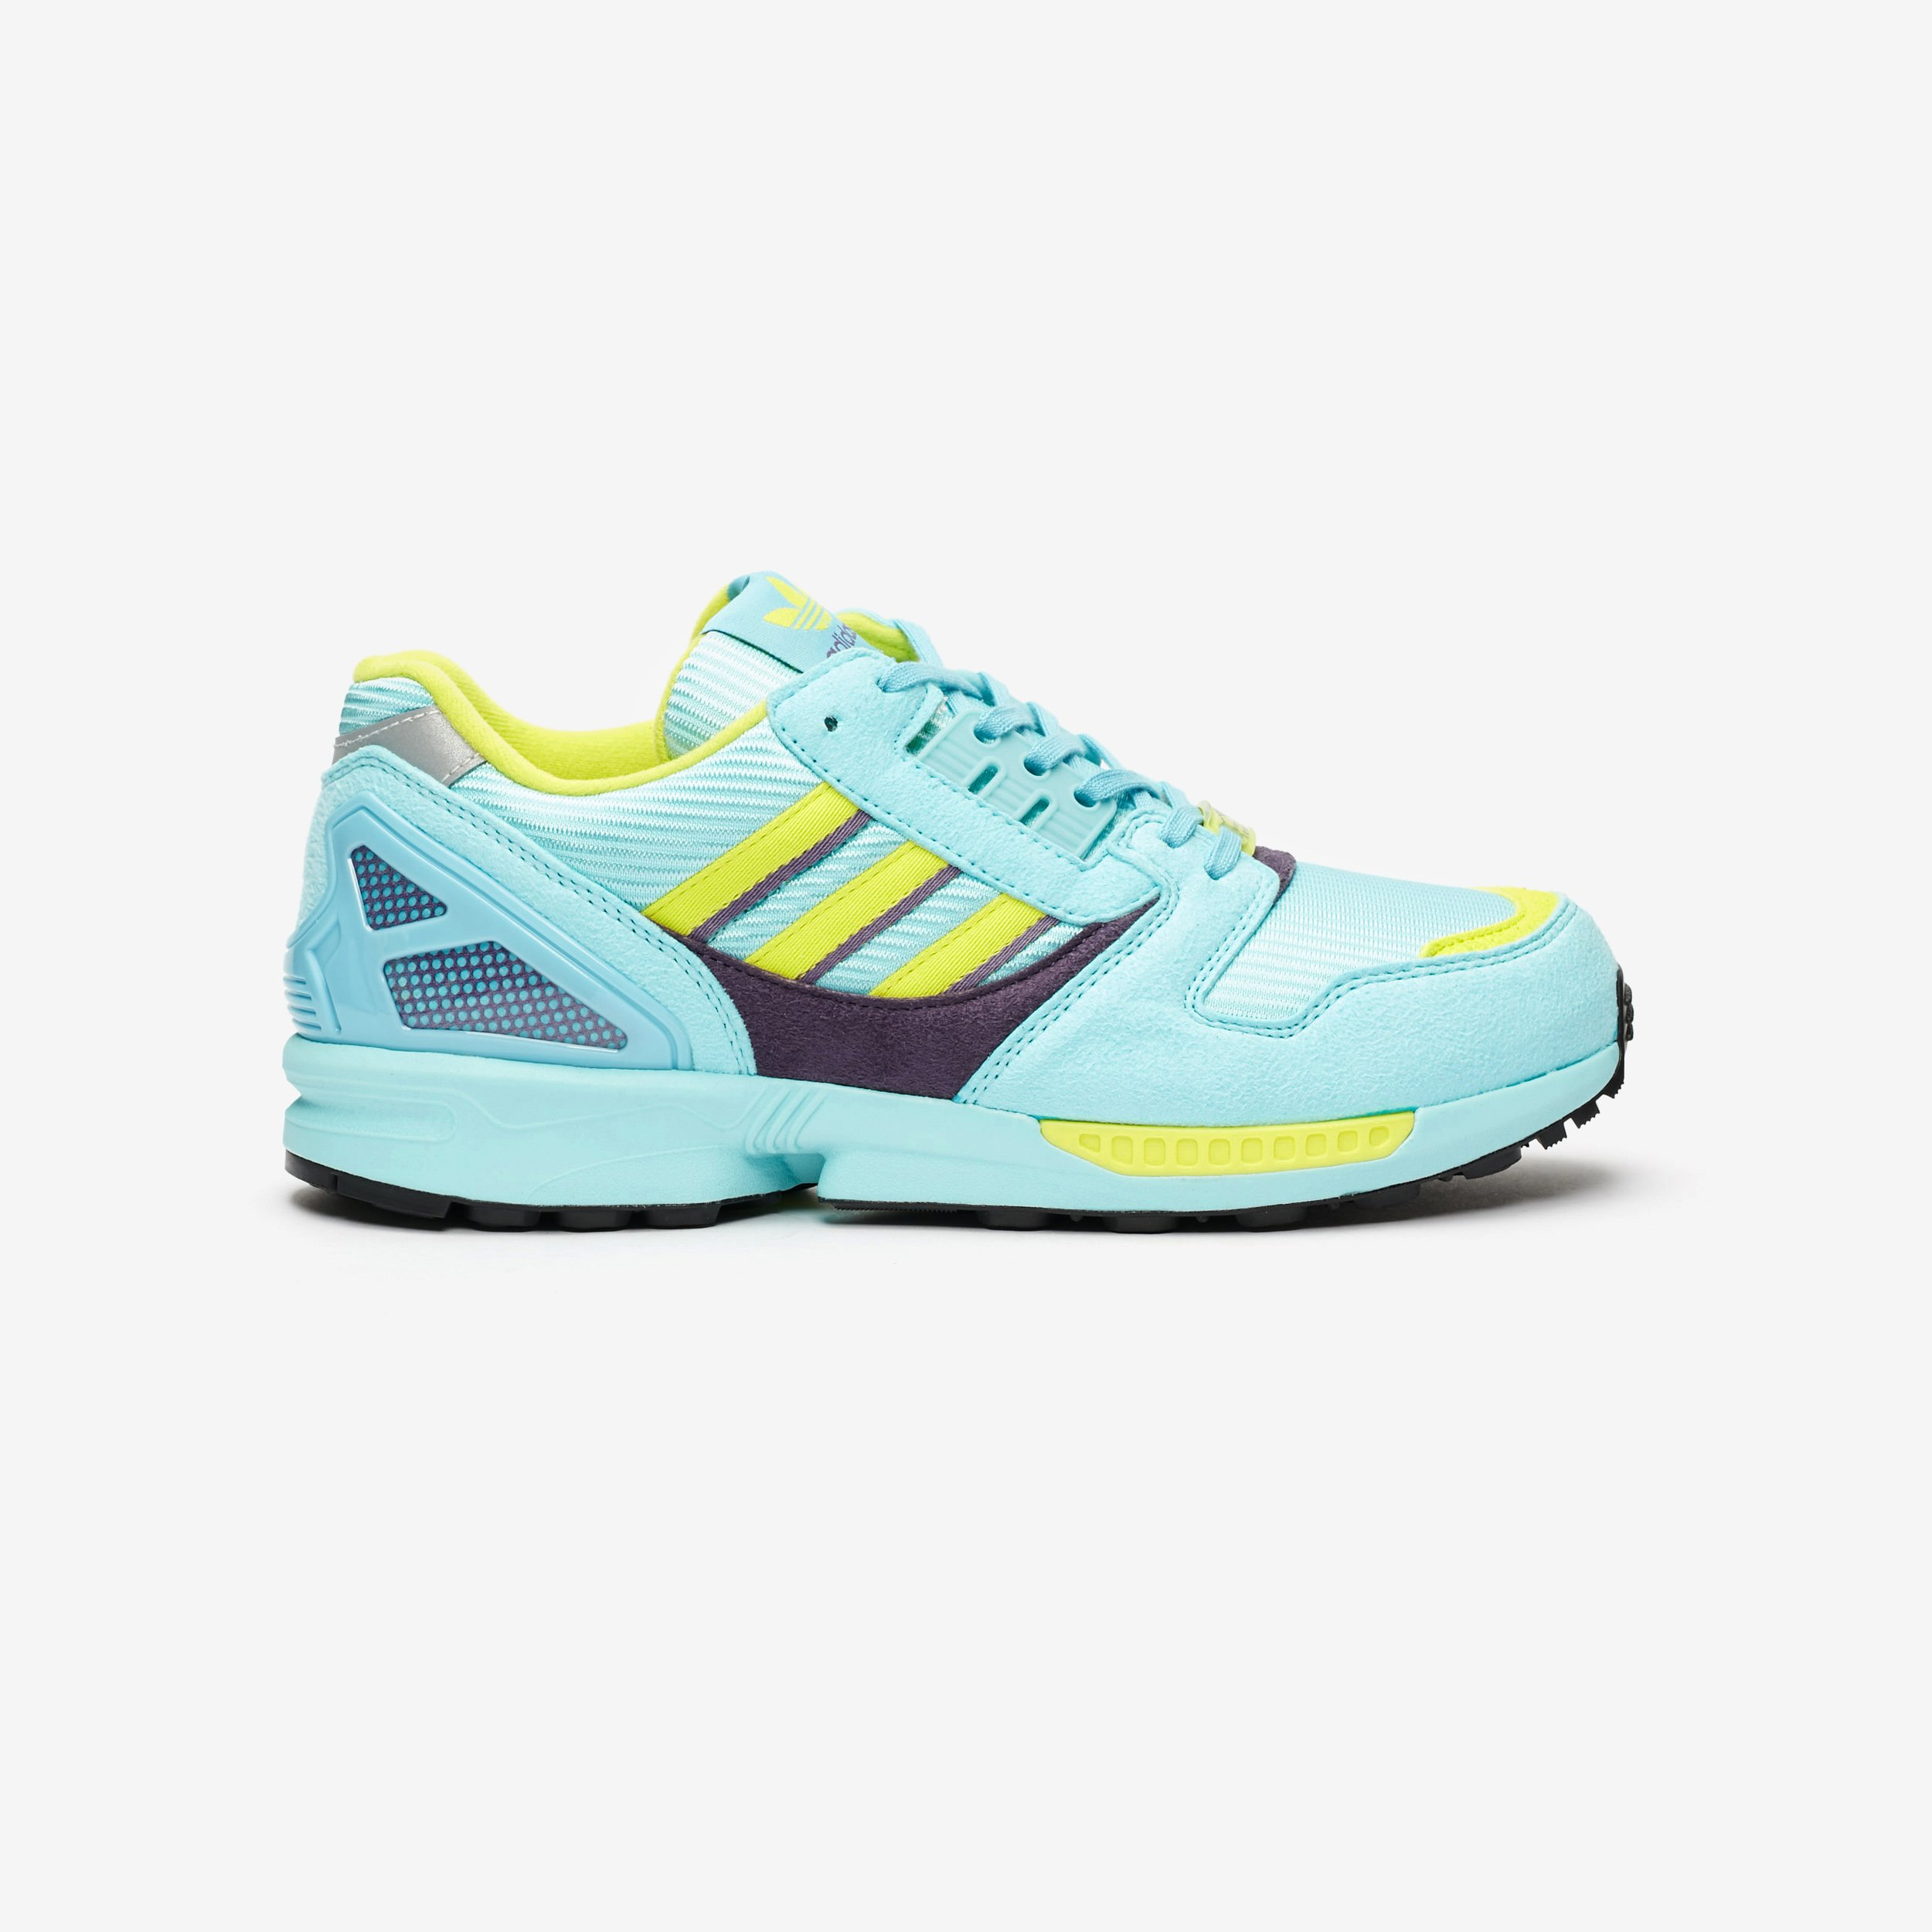 adidas Originals ZX 8000 Aqua in blau EG8784 | everysize